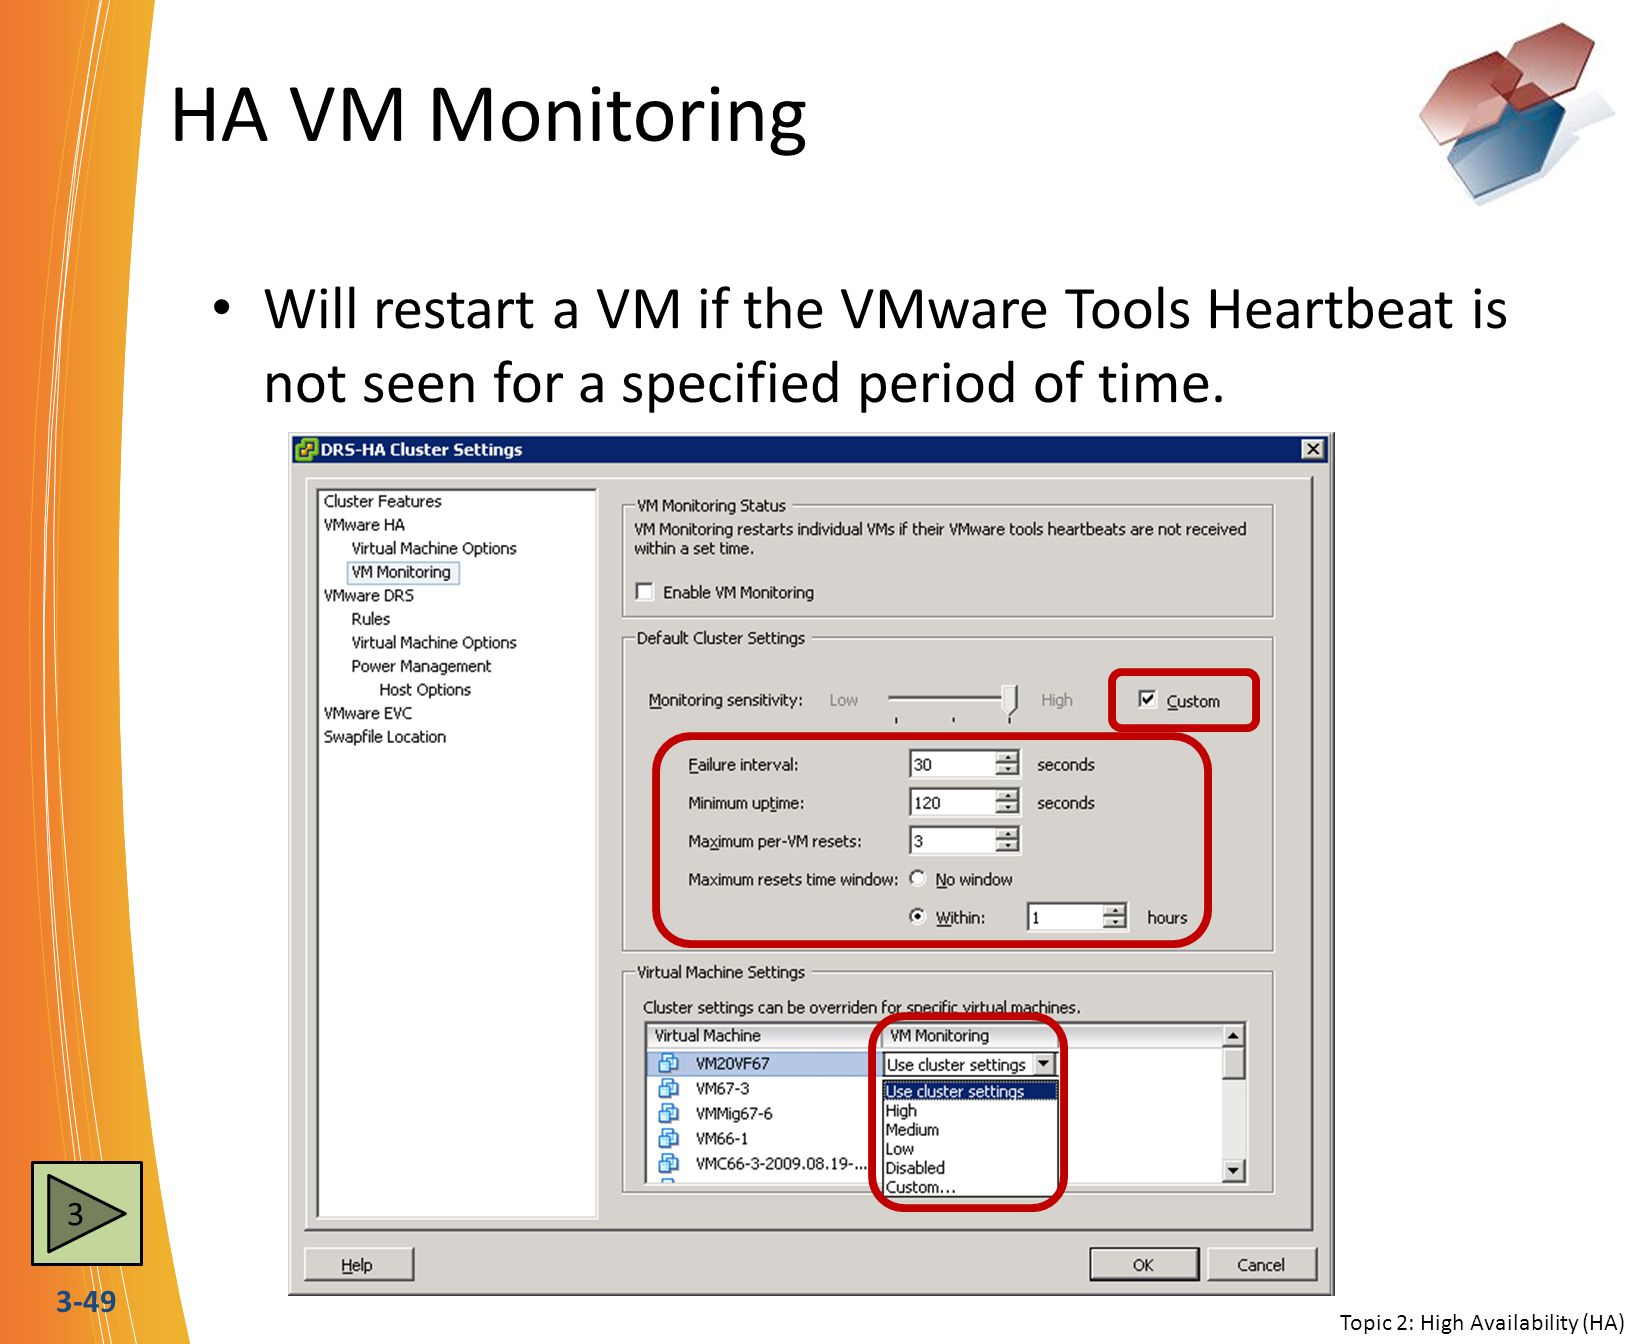 3-49 HA VM Monitoring Will restart a VM if the VMware Tools Heartbeat is not seen for a specified period of time.